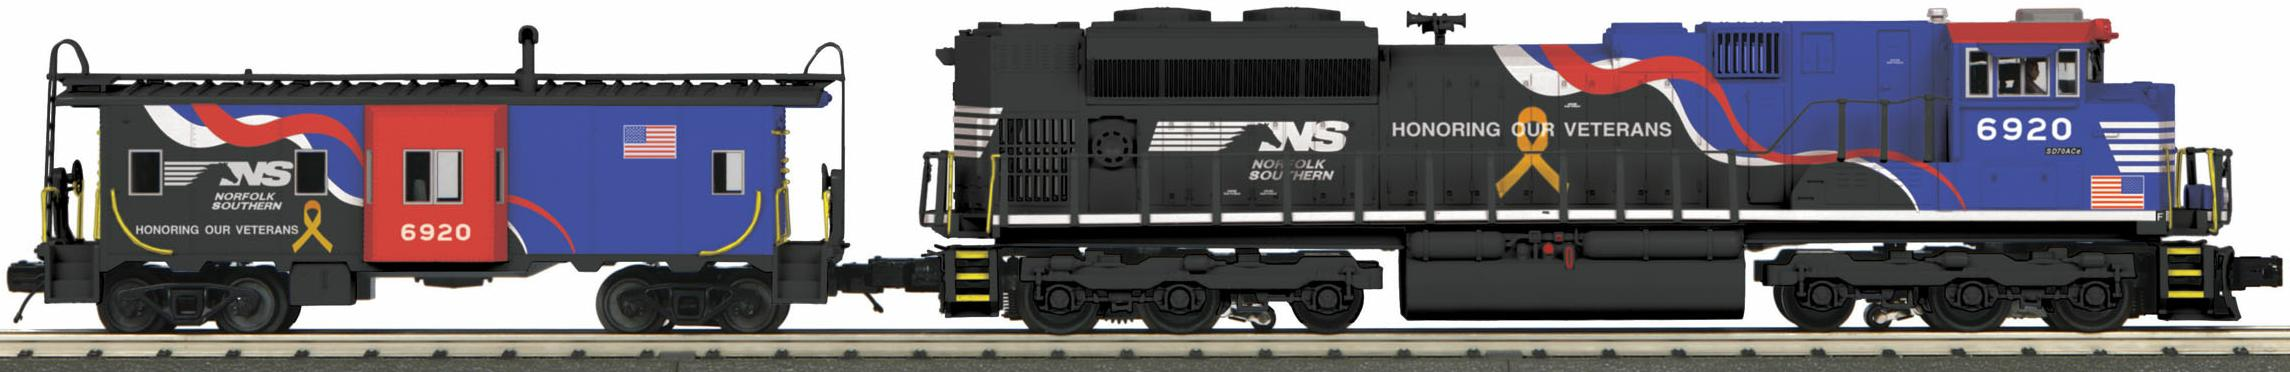 Norfolk Southern SD70ACe Imperial Diesel & Caboose Set (Veterans) image